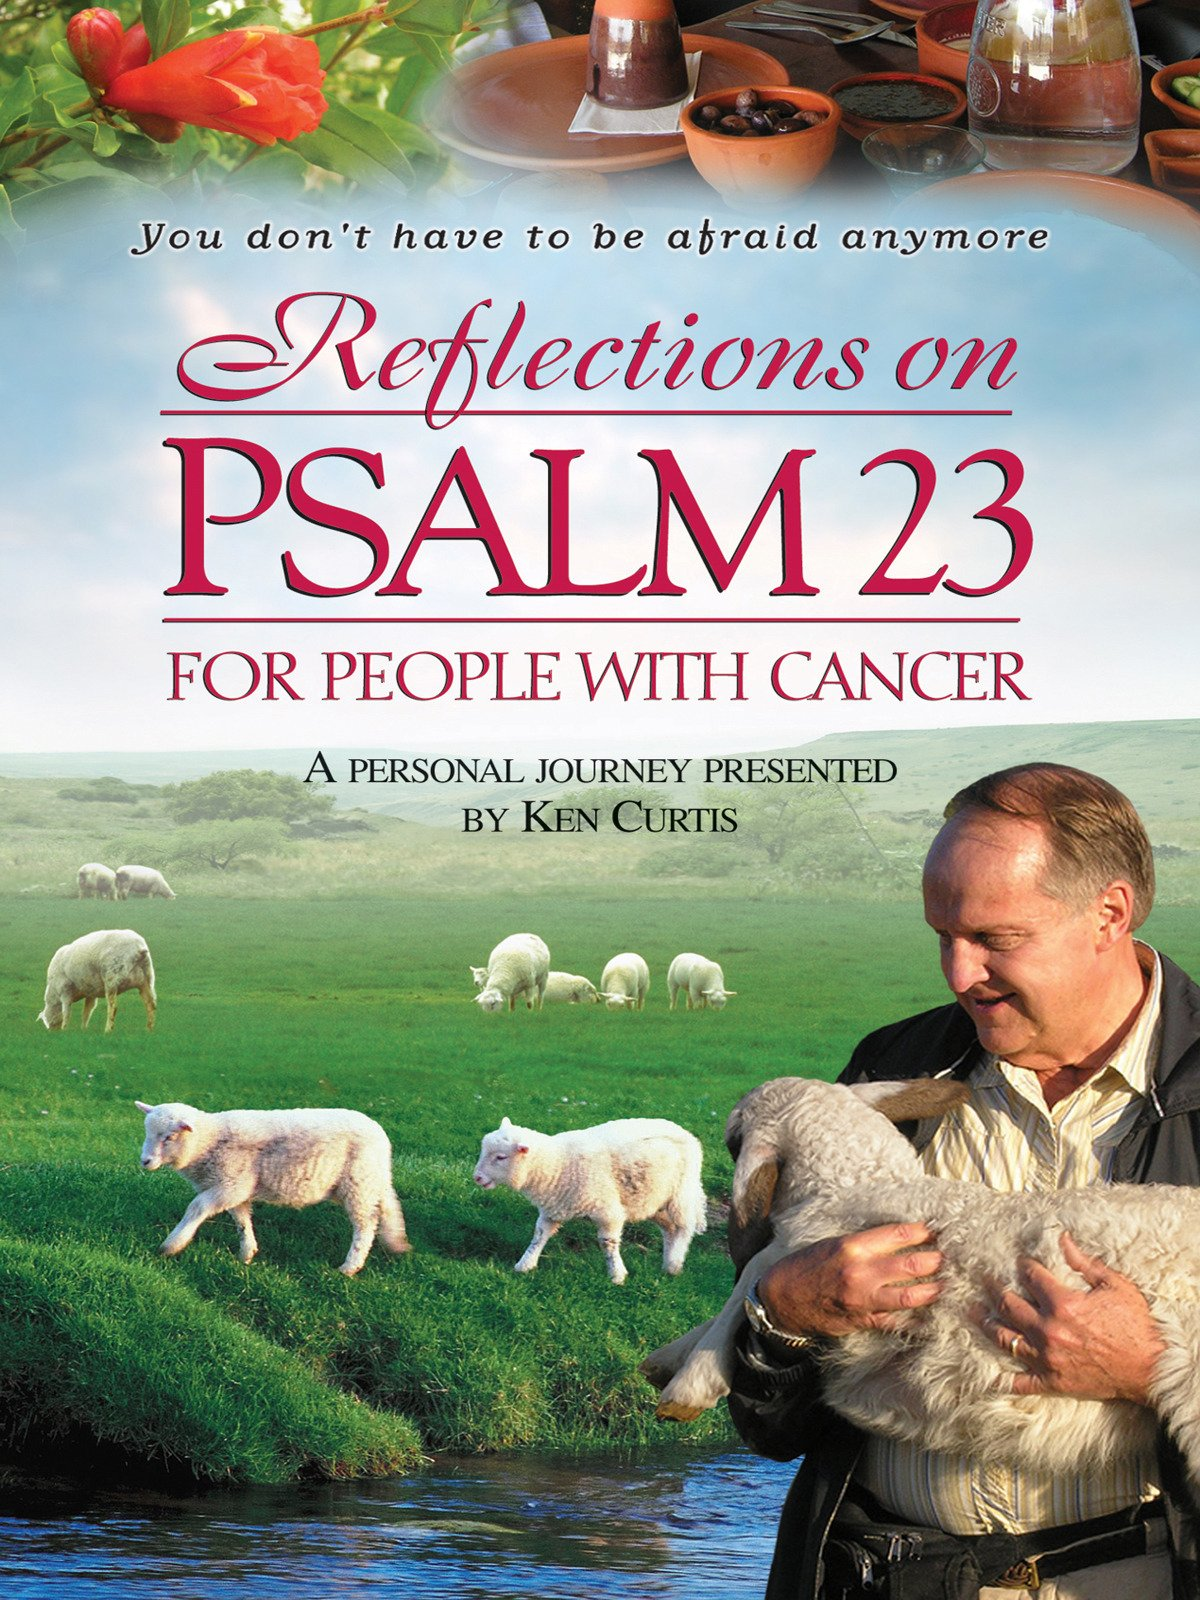 Reflections On Psalm 23 For People With Cancer on Amazon Prime Video UK